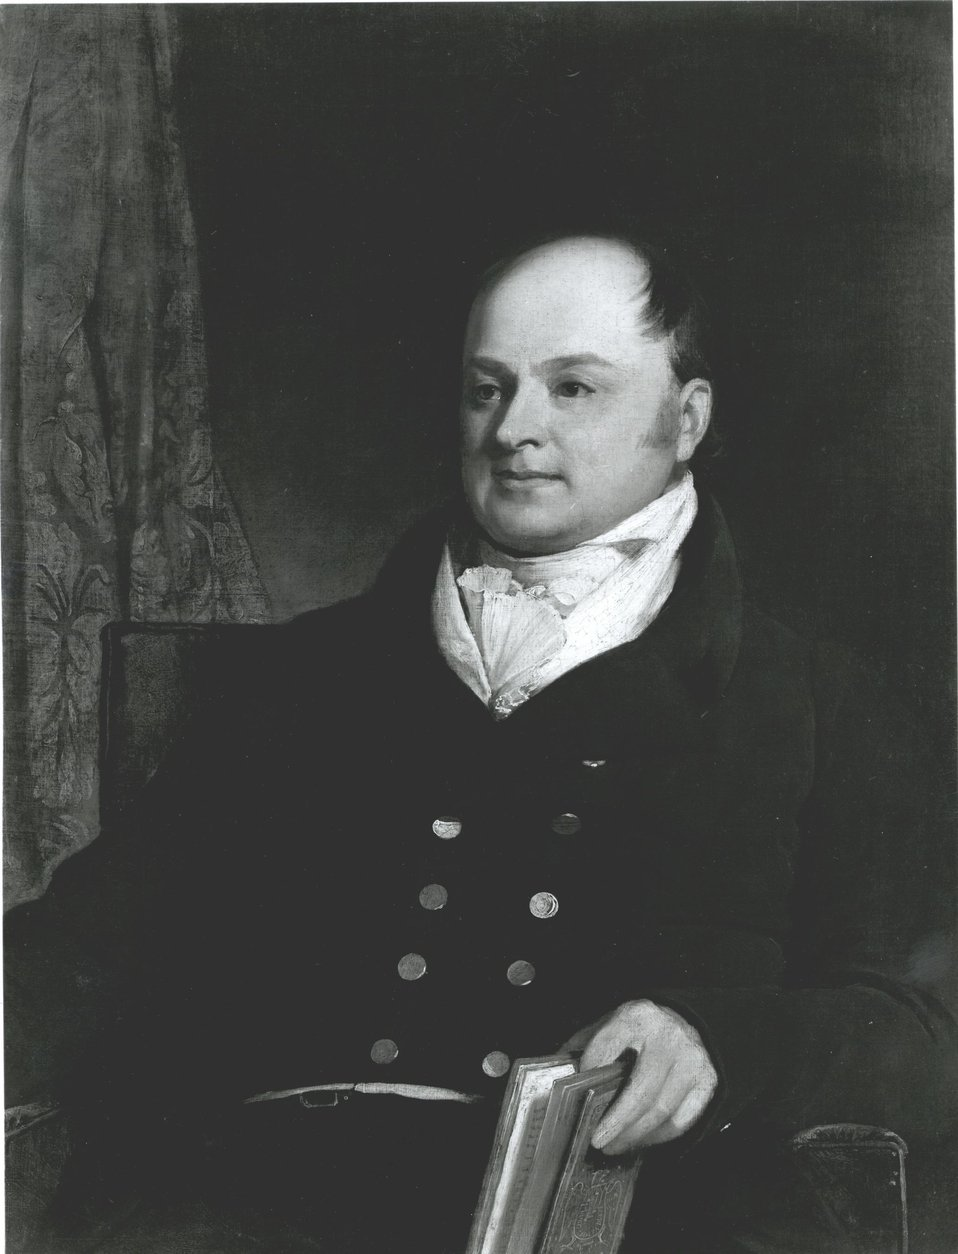 John Quincy Adams, U.S. Secretary of State